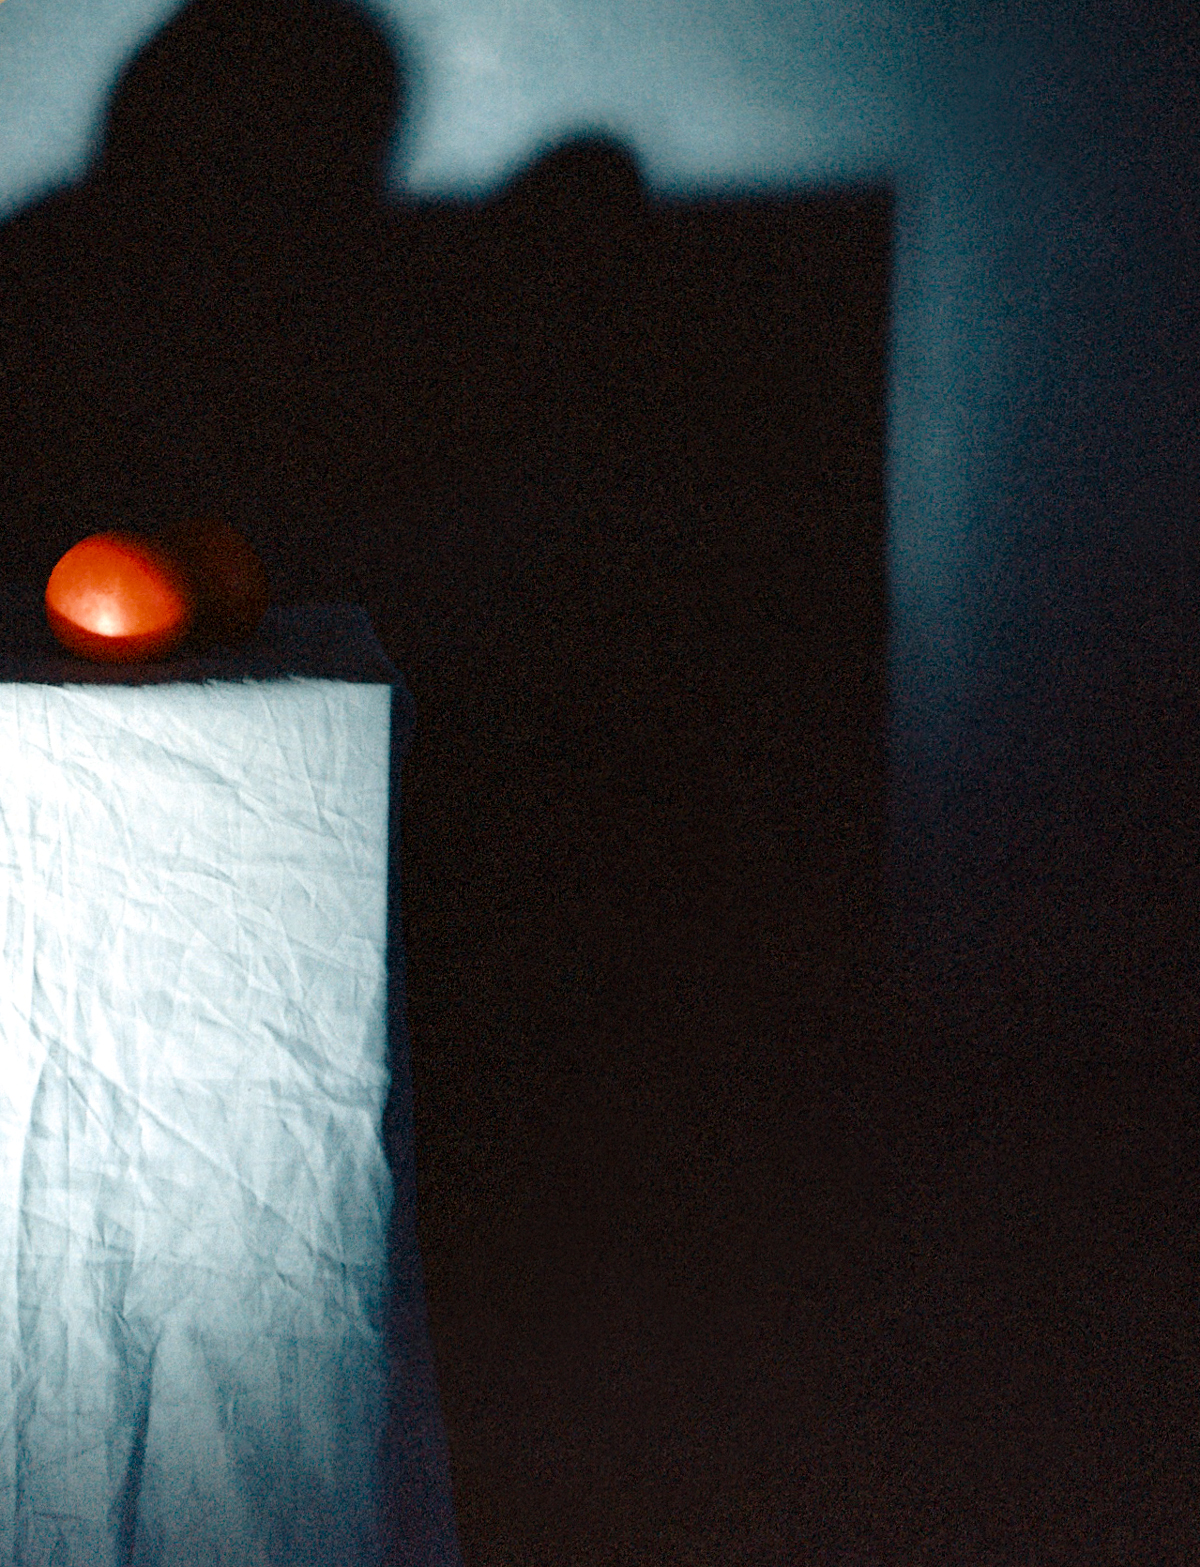 julien_capelle_nature_morte_tomate_ombres_portees.jpg